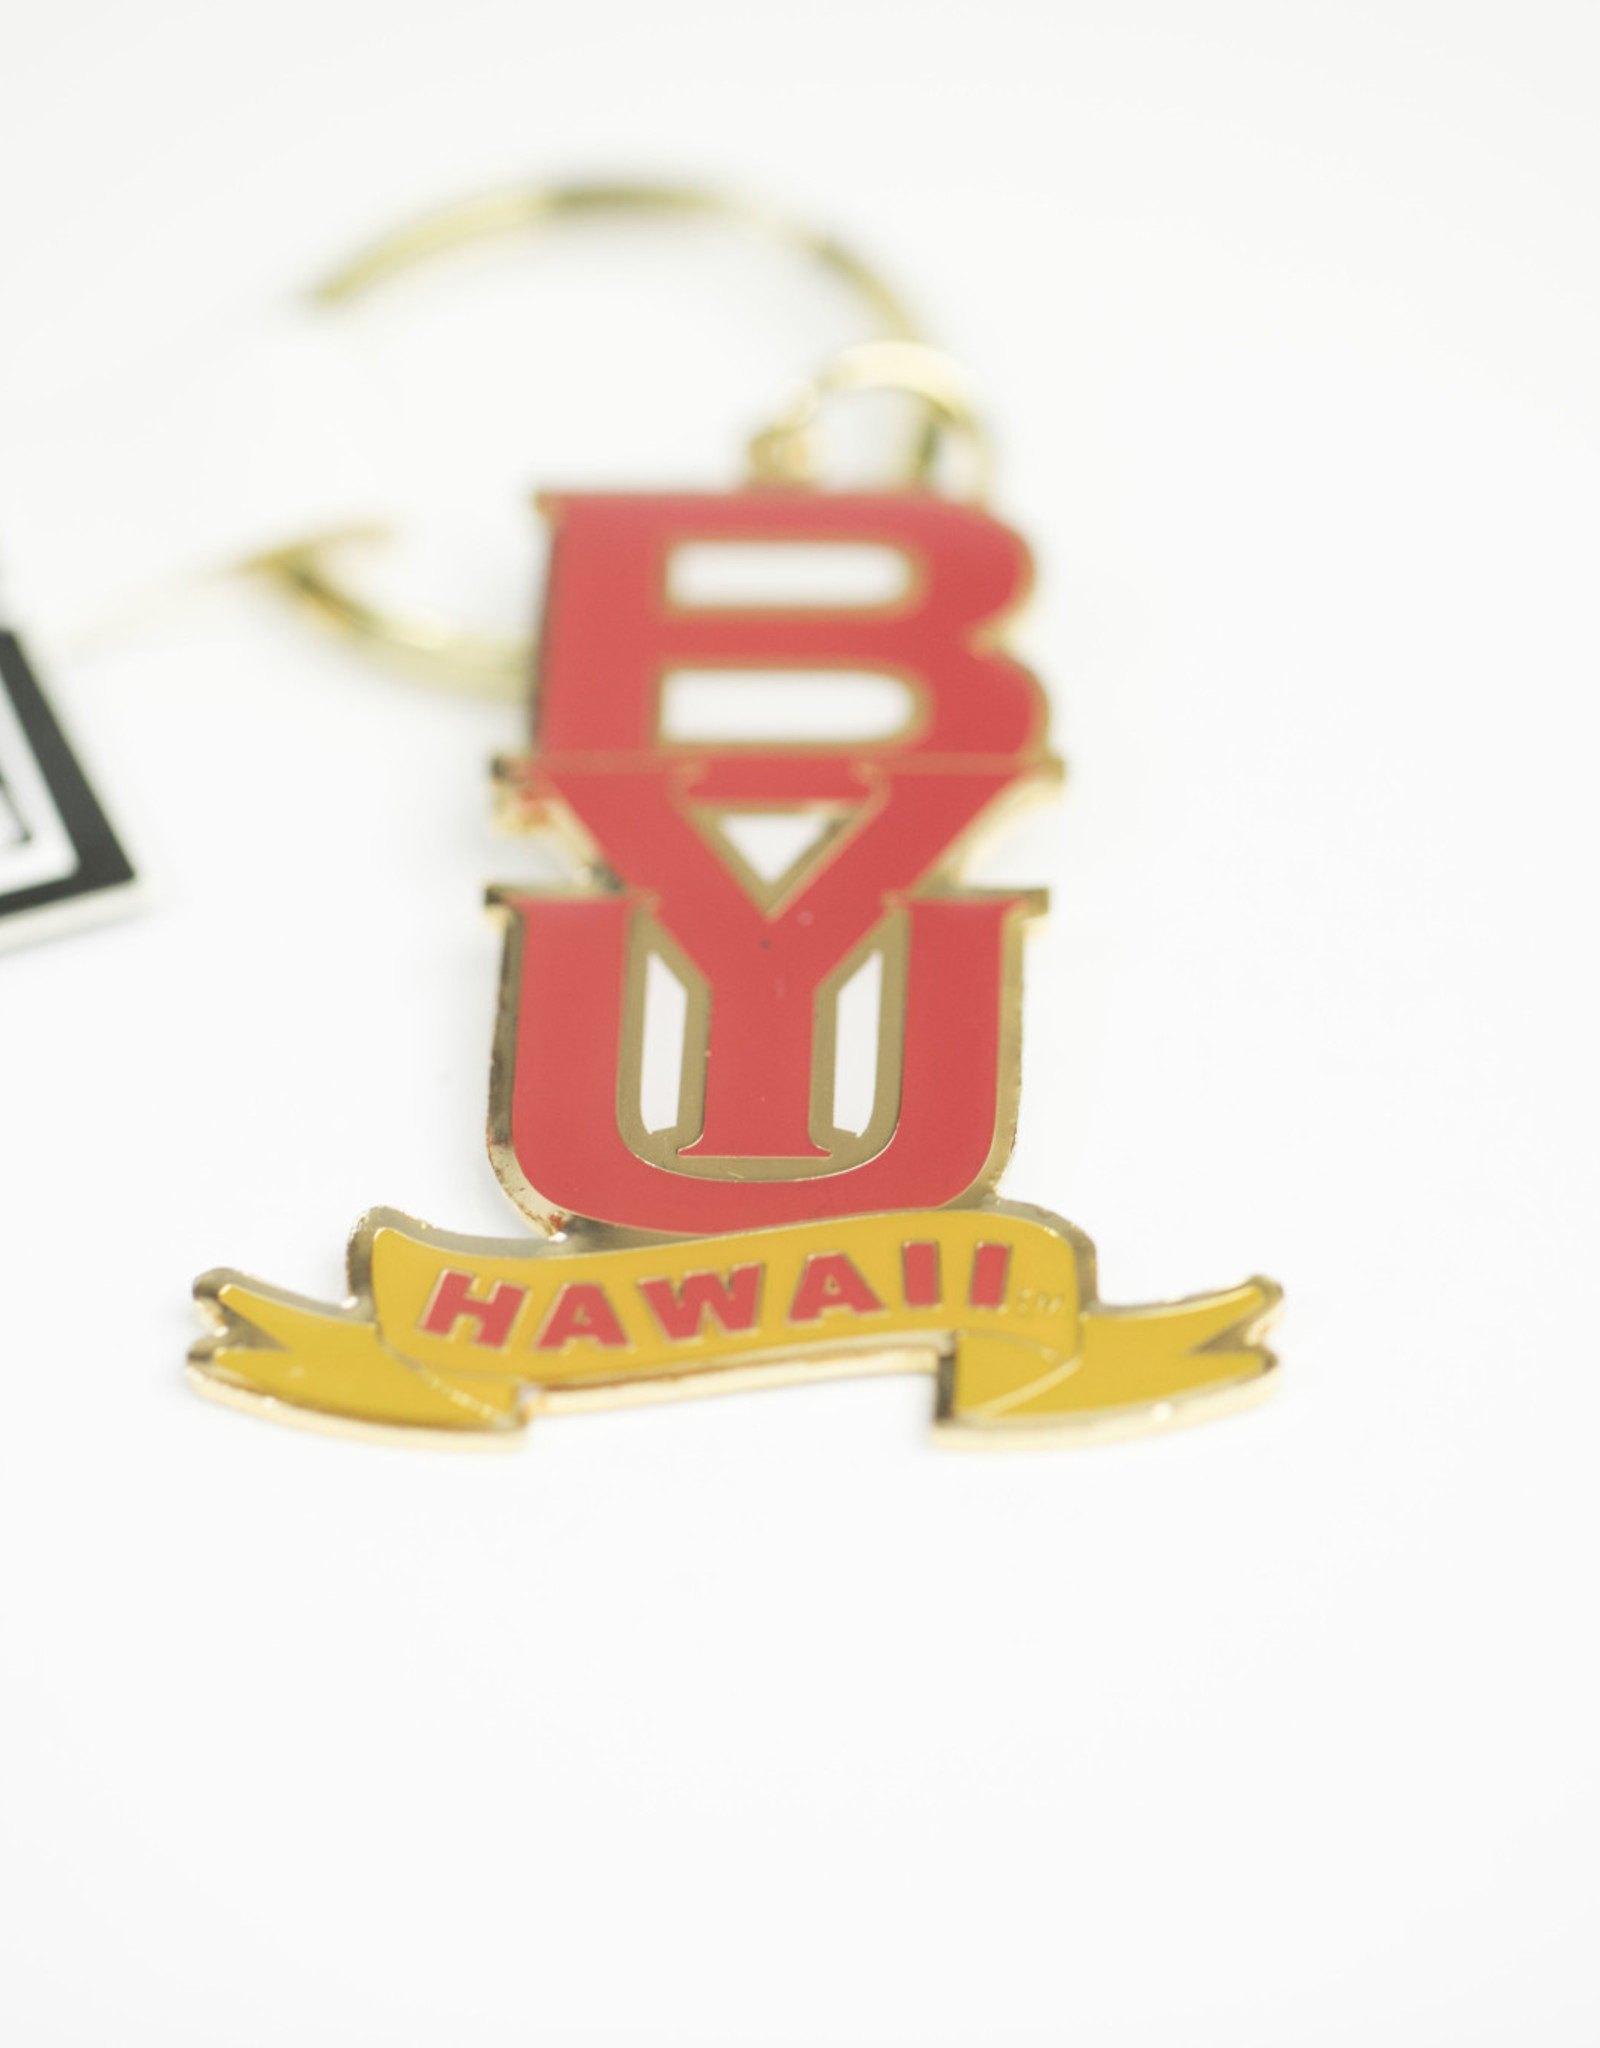 R&D BYU HAWAII METAL KEYTAG HAWAII BANNER